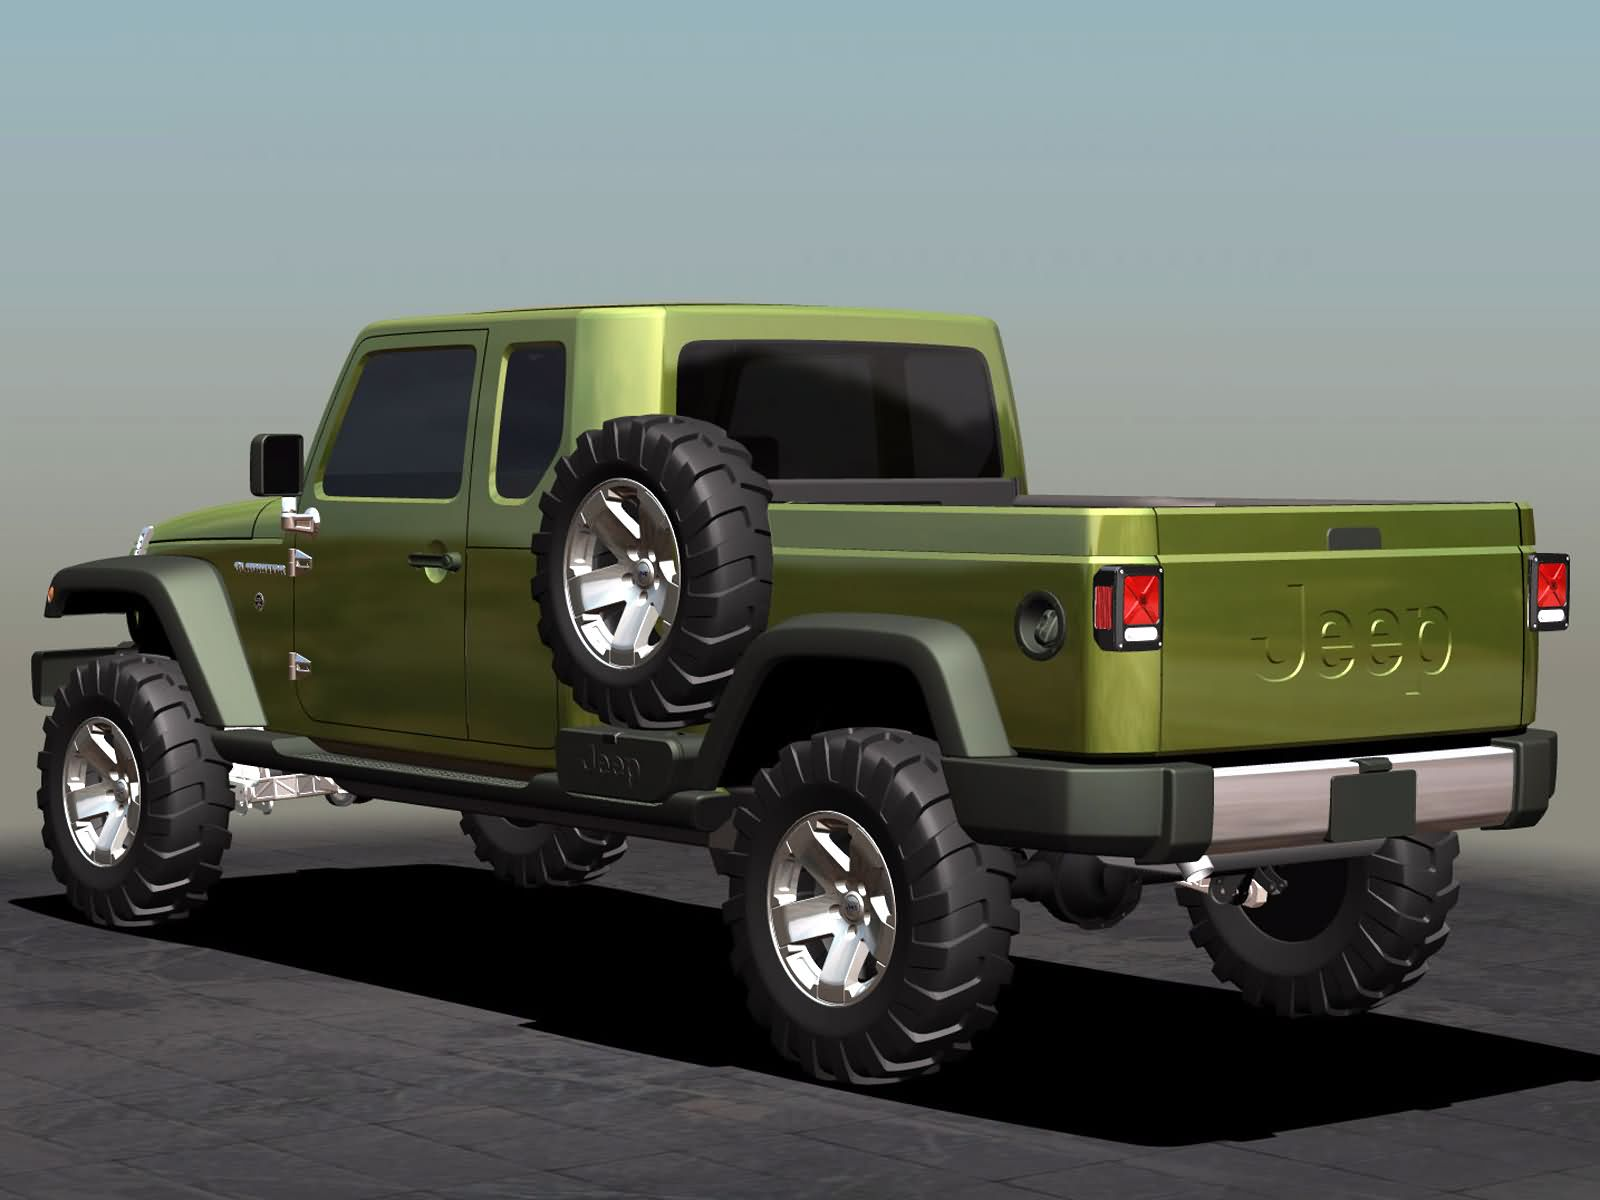 Jeep Gladiator photos Gallery with 13 pics CarsBase